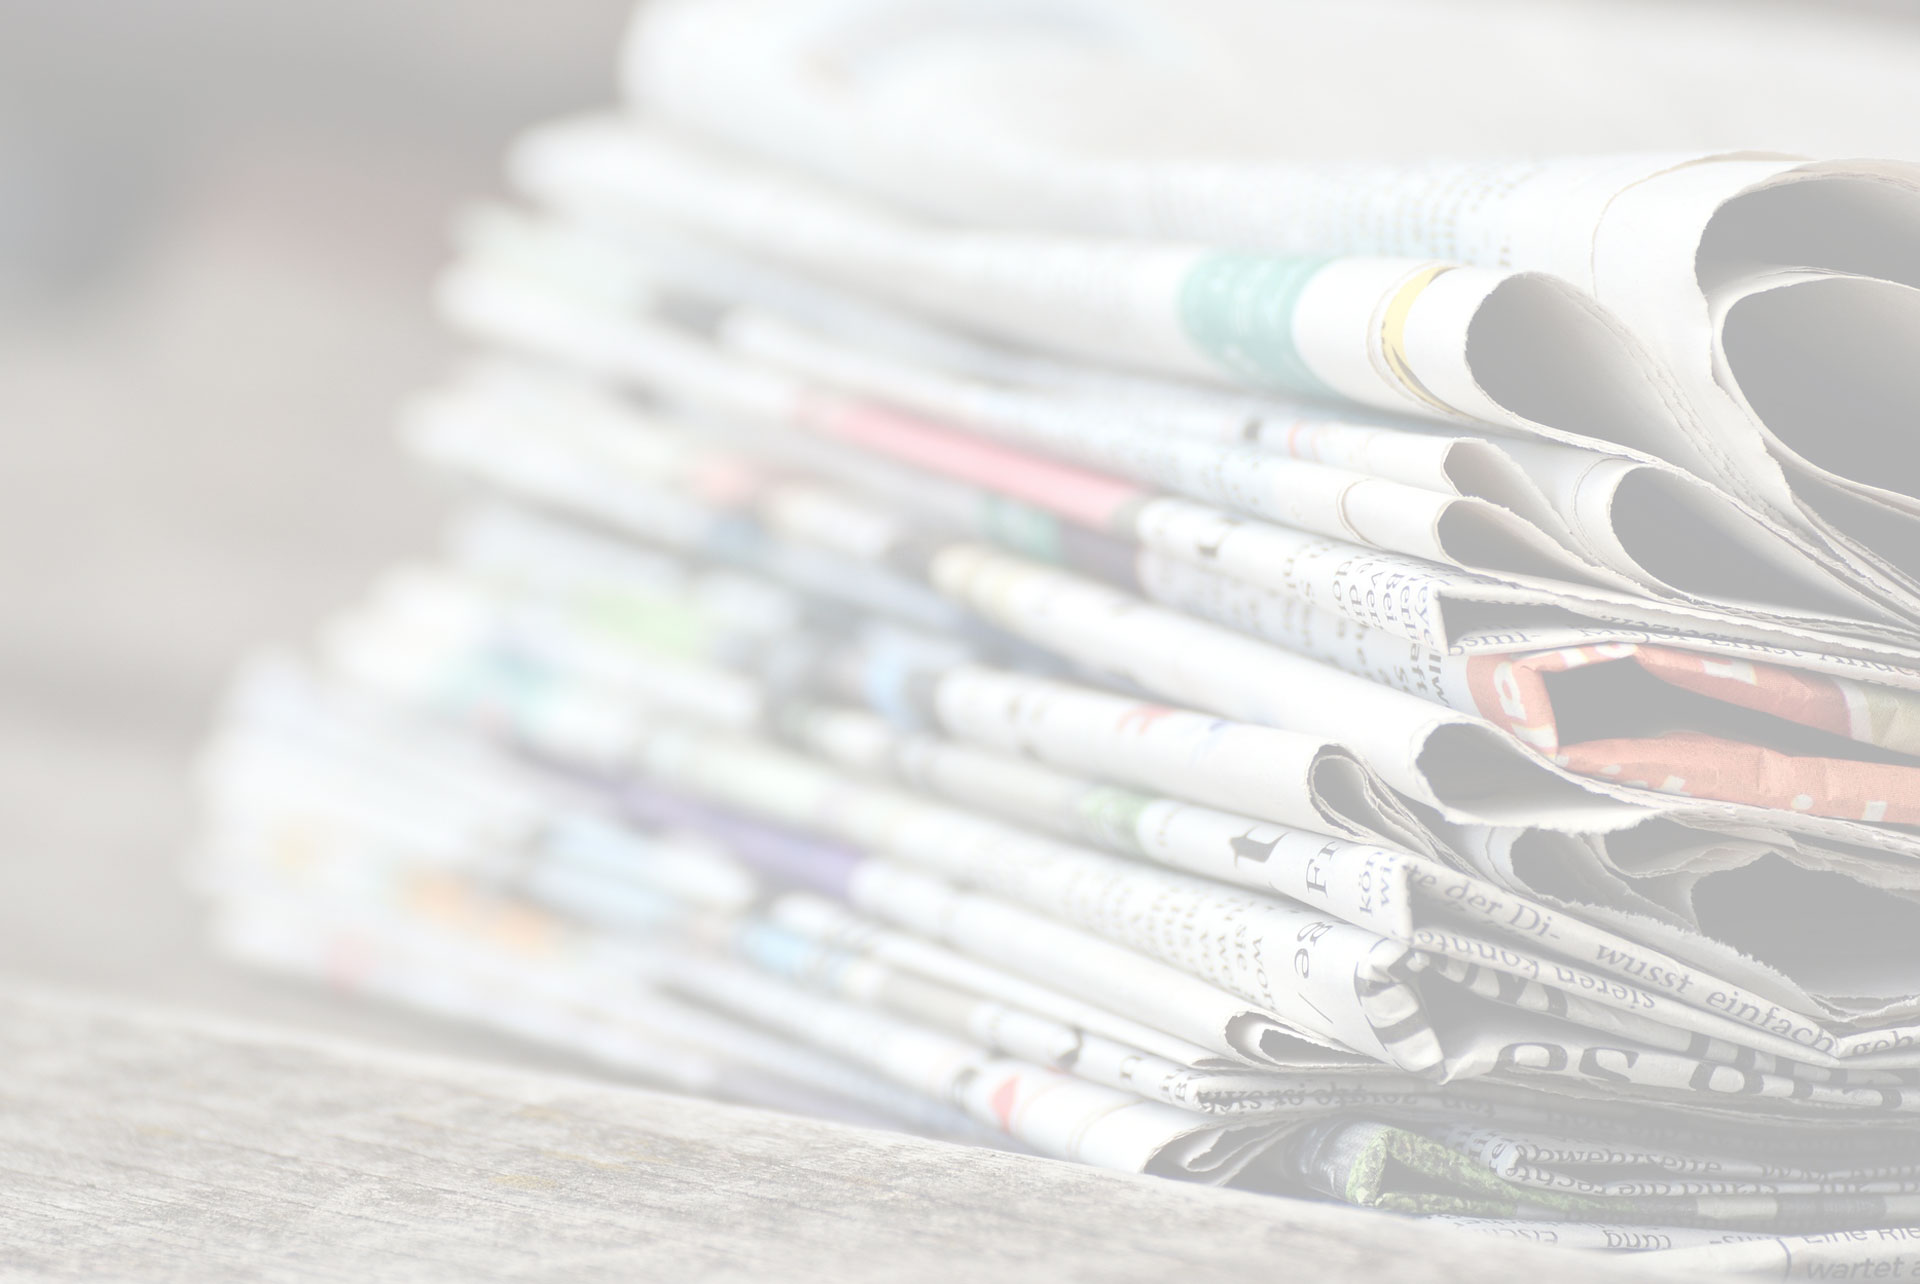 Charles Leclerc Monza